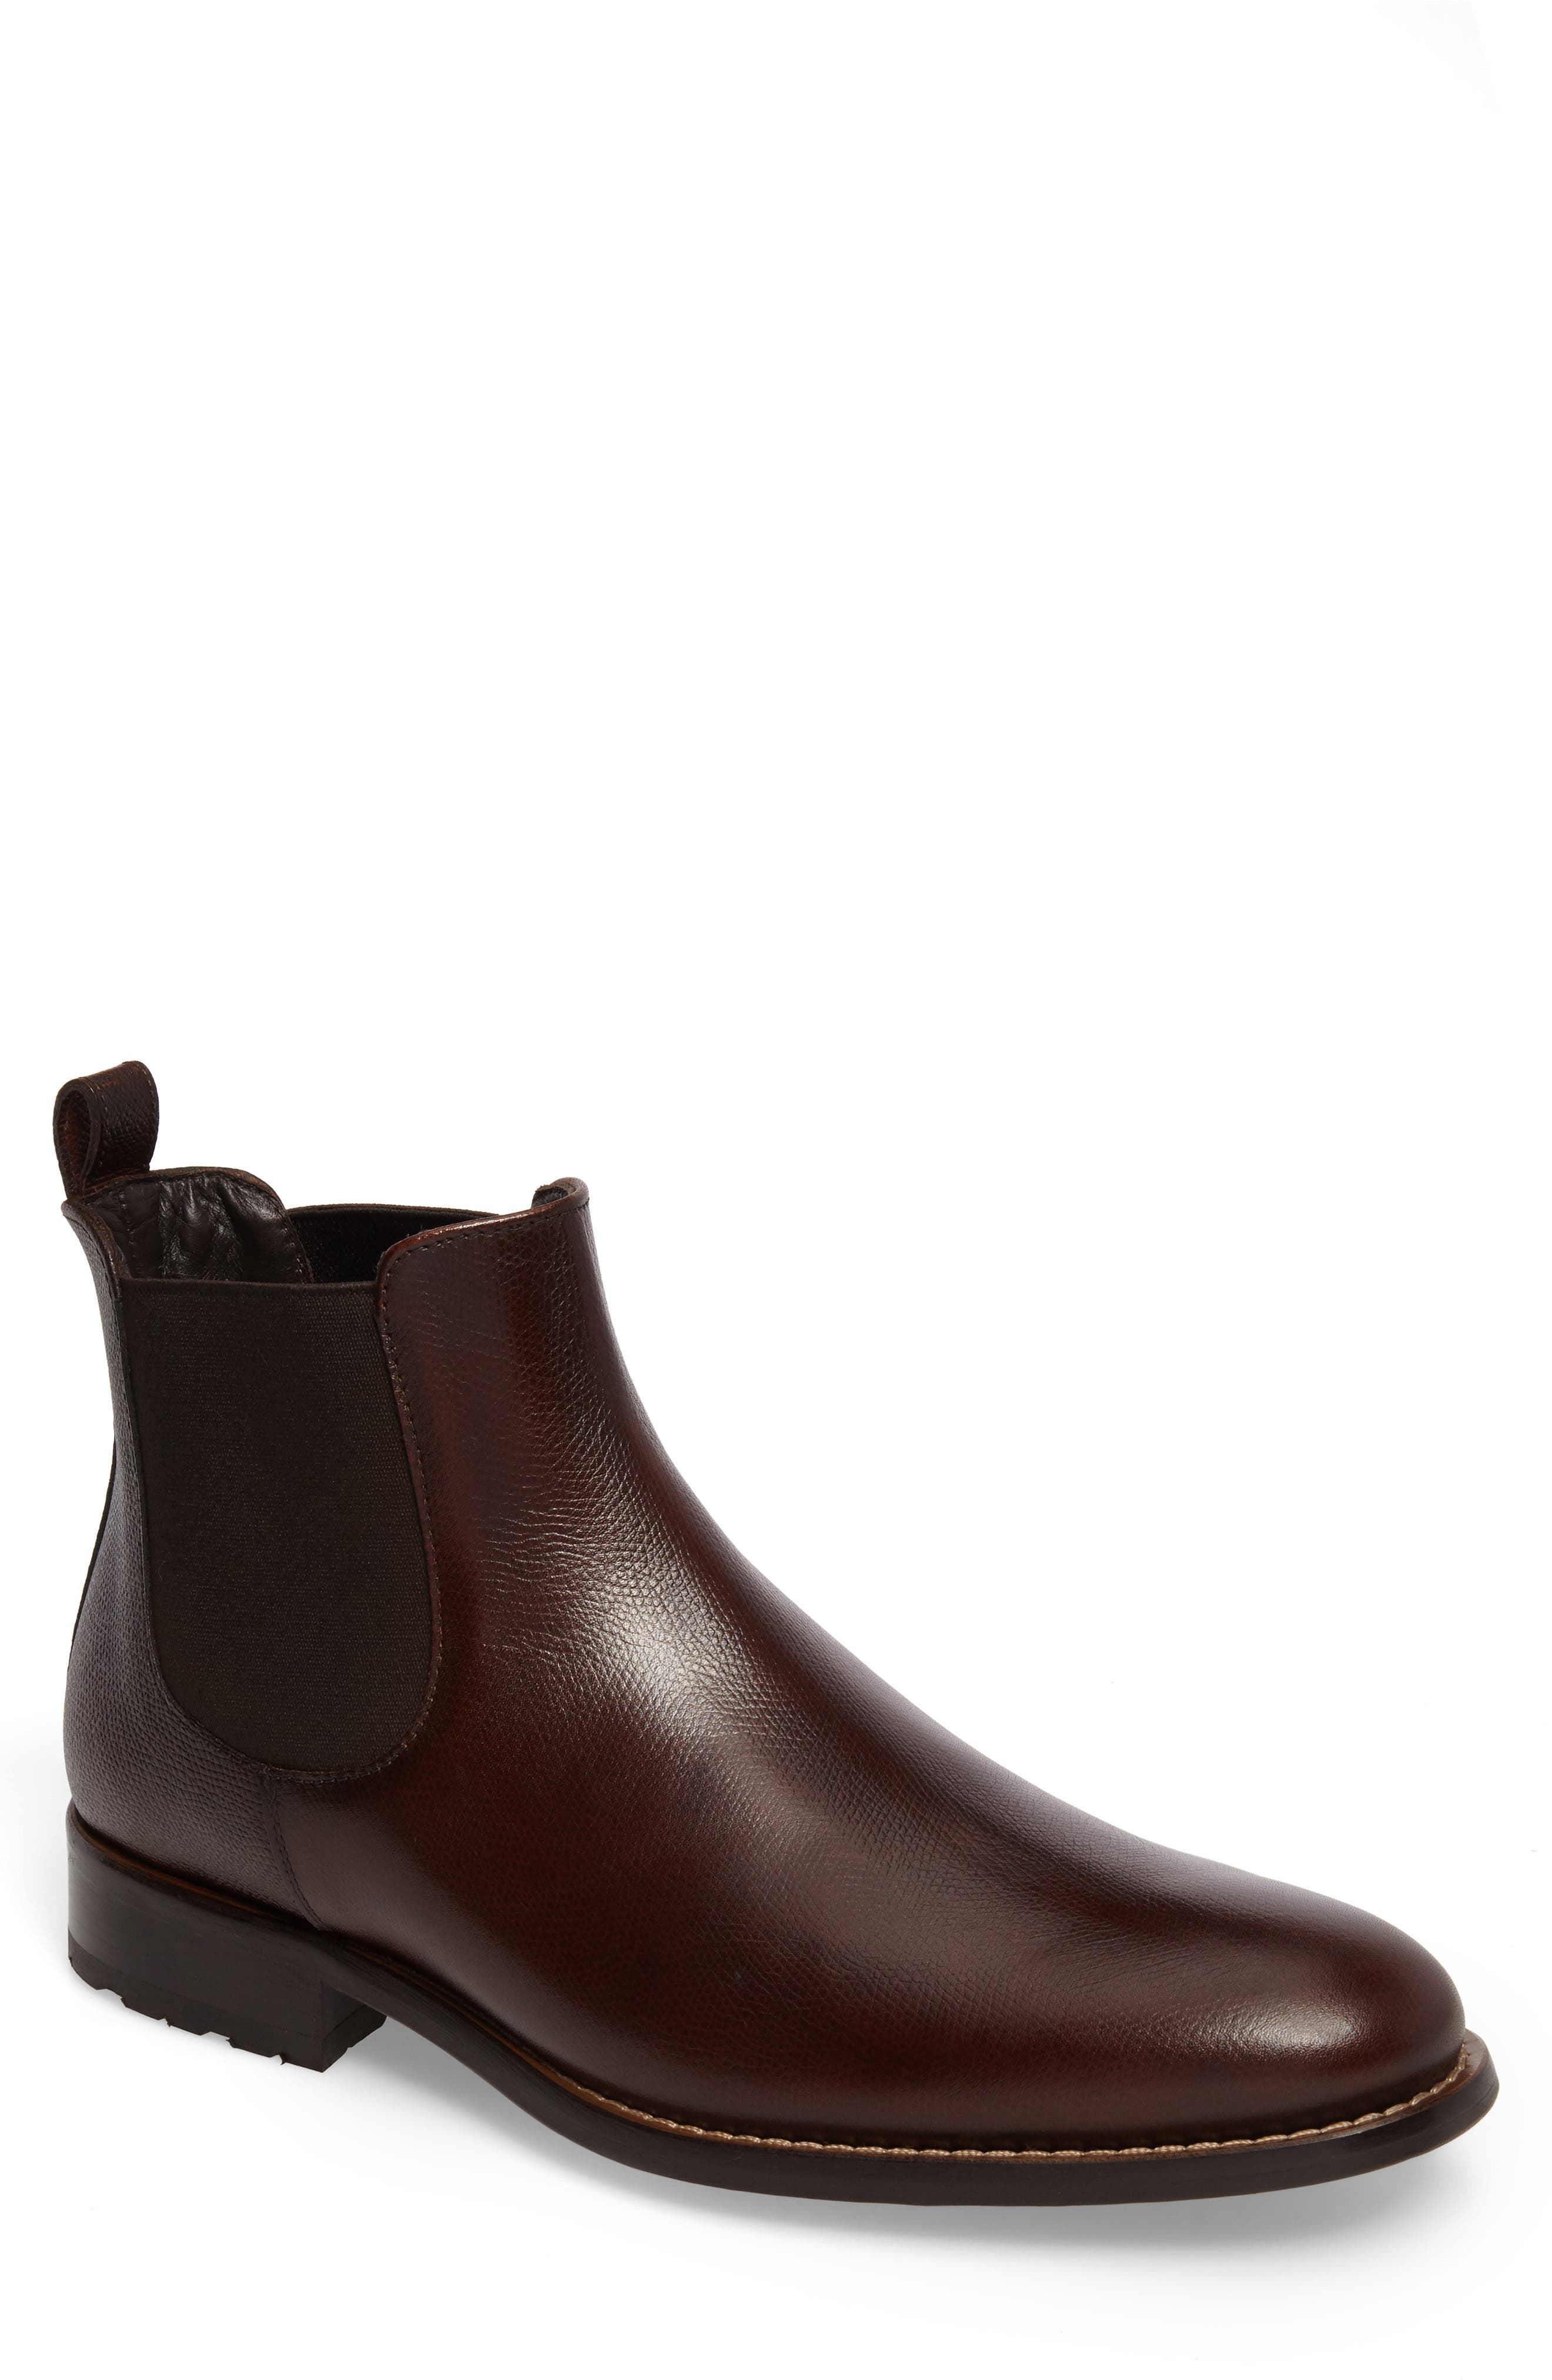 Main Image - To Boot New York Savoy Chelsea Boot (Men)